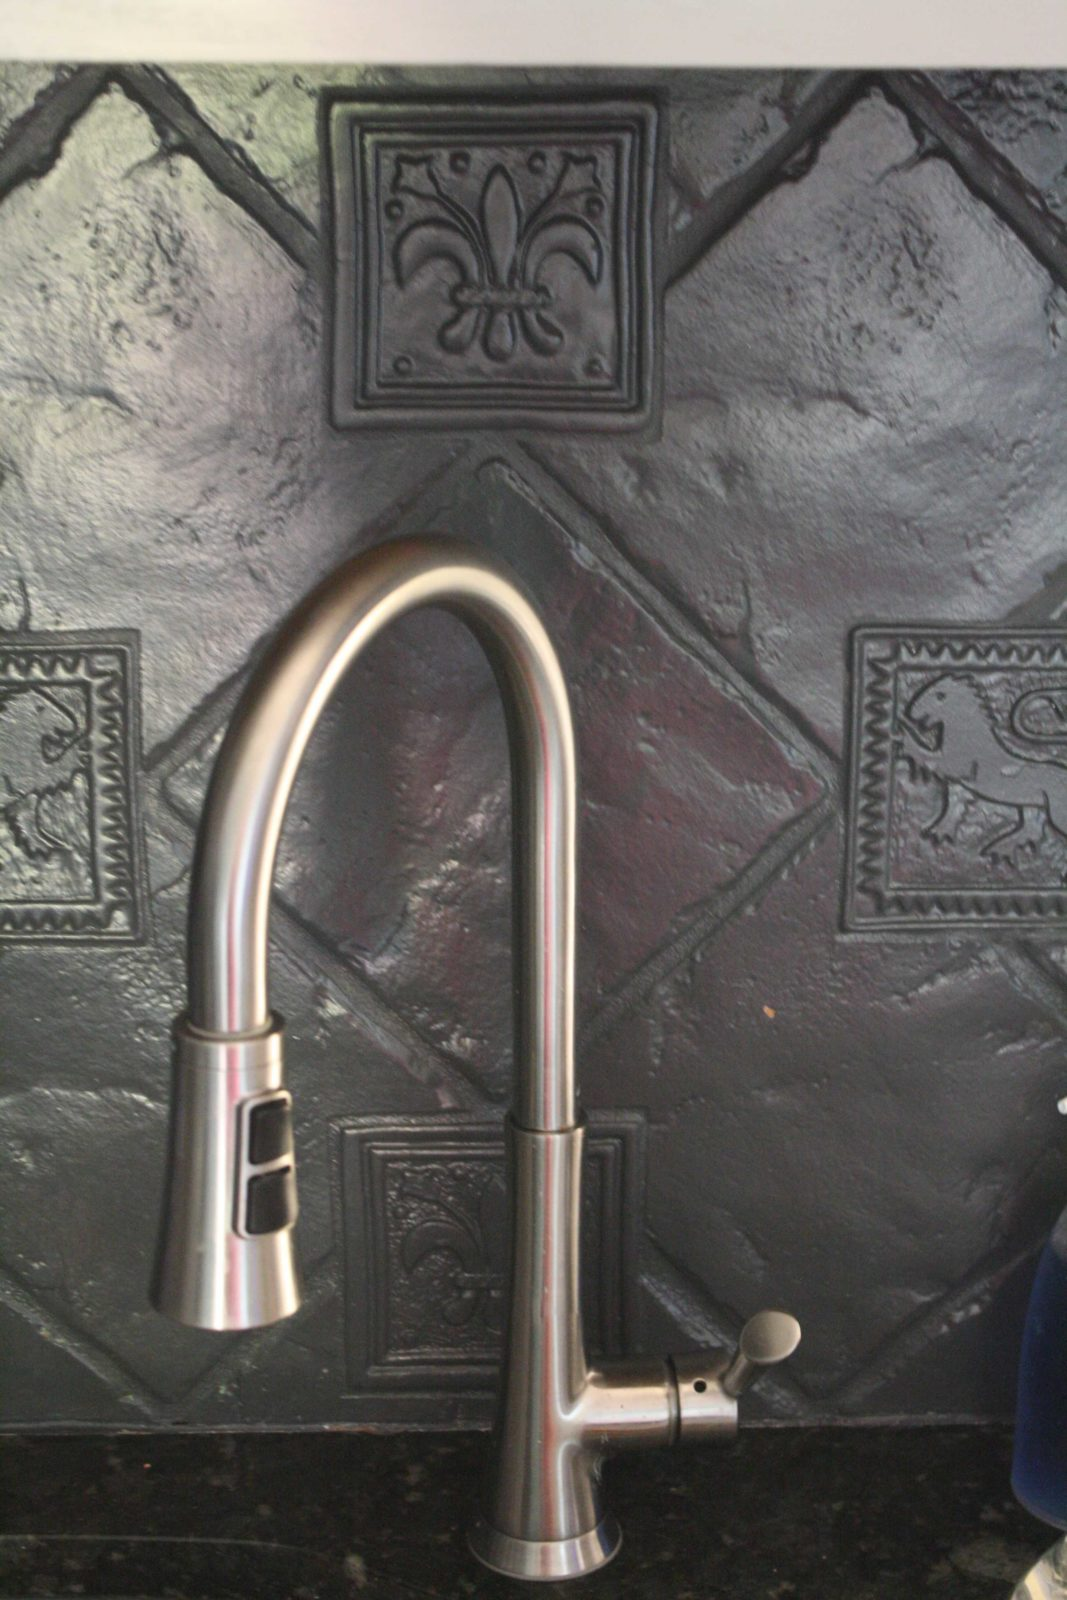 How to paint a tile backsplash my budget solution designer trapped you can paint your tile backsplash talk about a thrifty update full tutorial by dailygadgetfo Choice Image